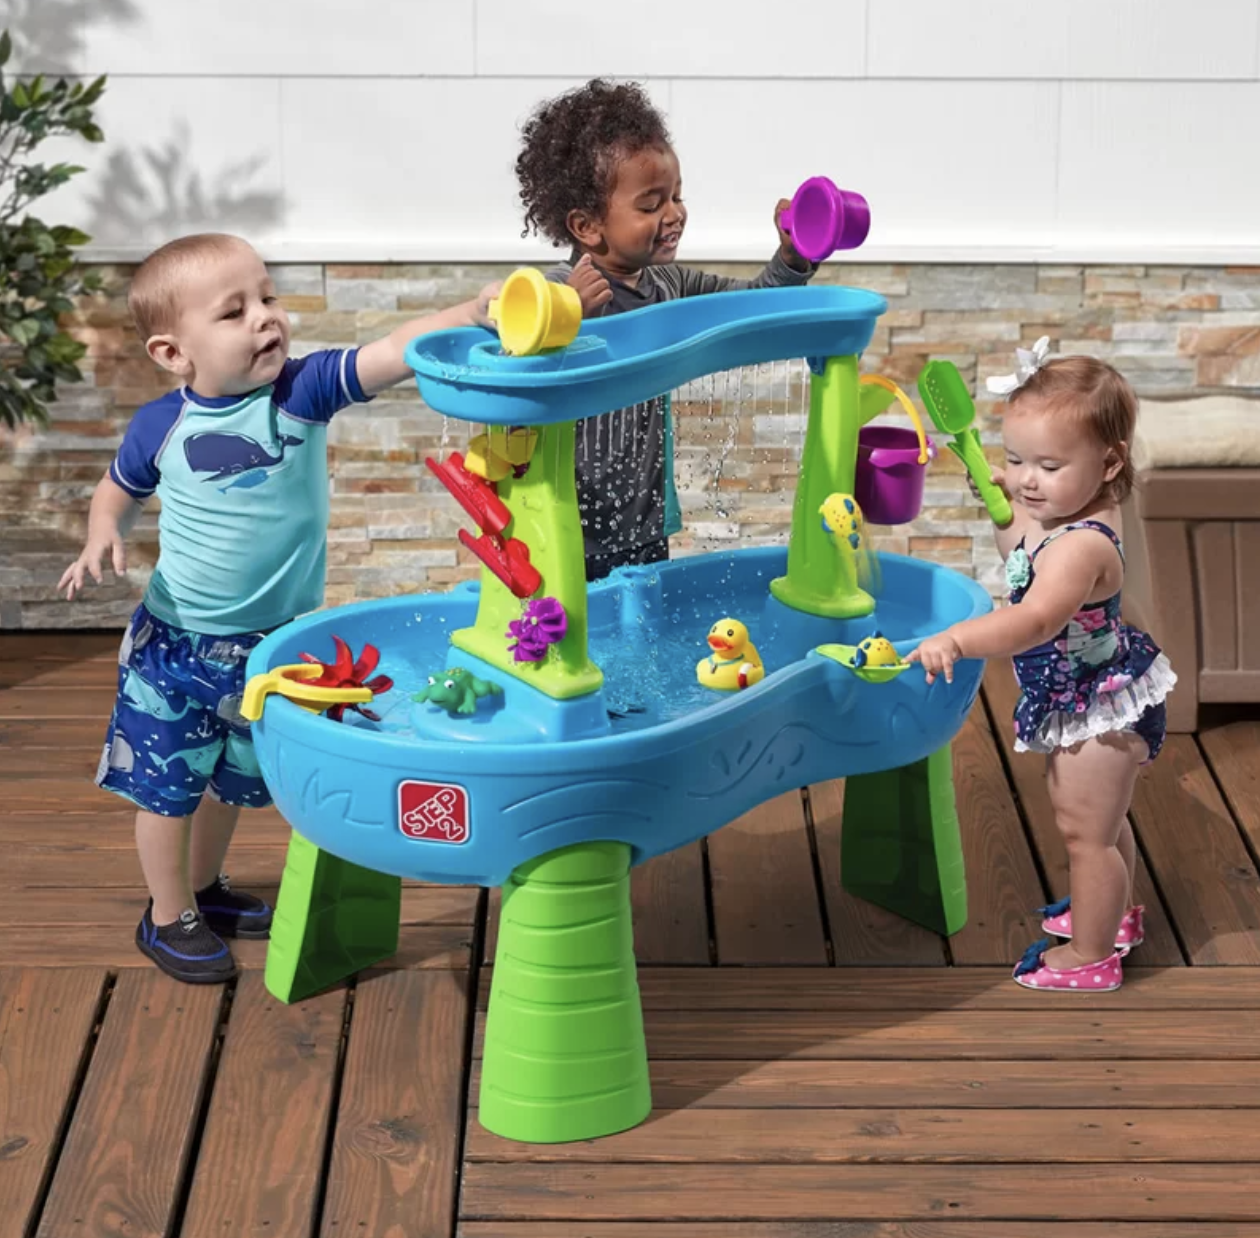 Three kids playing with the water table